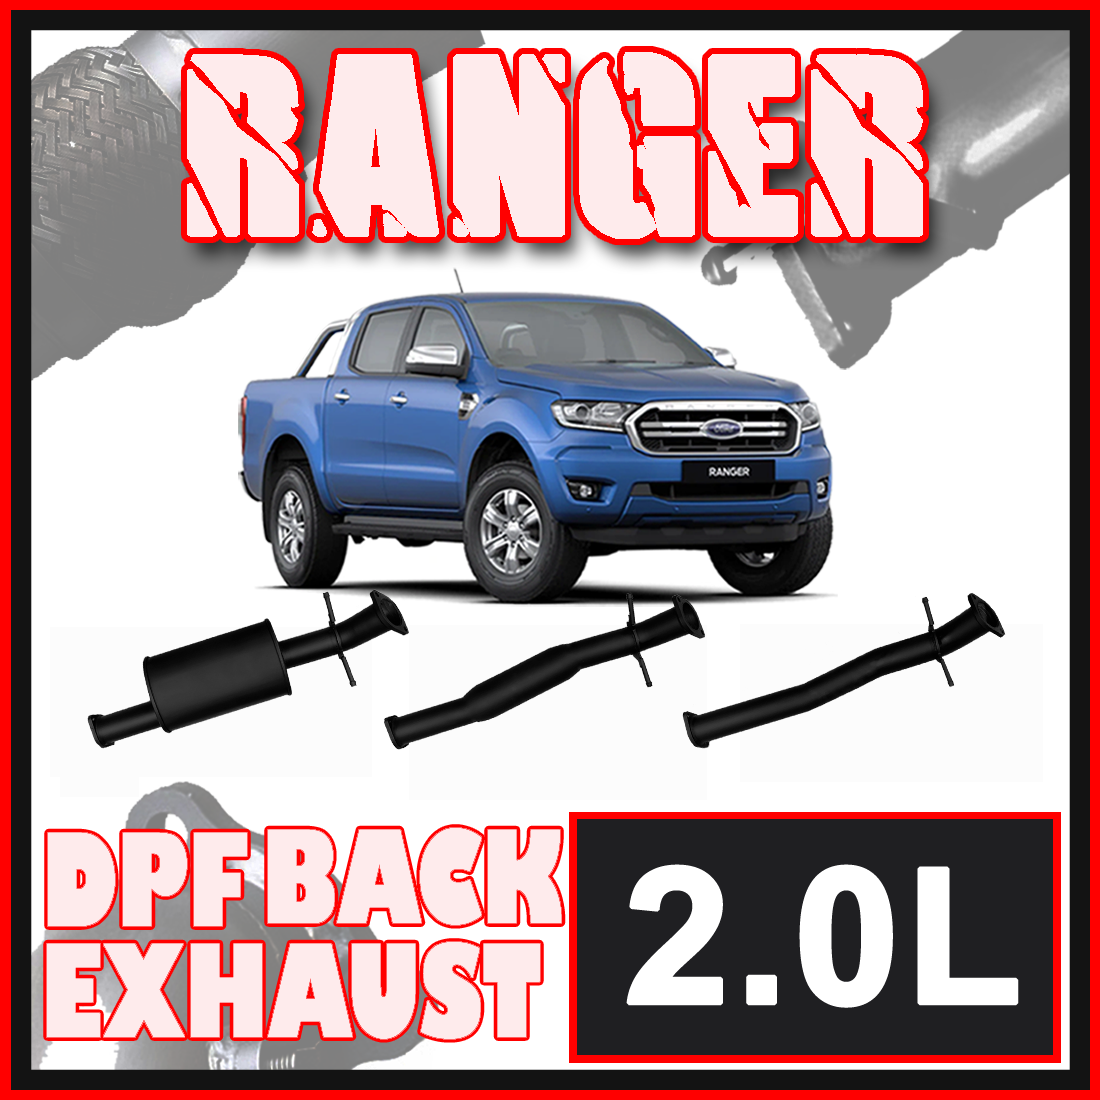 Ford Ranger 2.0L PX3 DPF Model Ignite Exhaust image